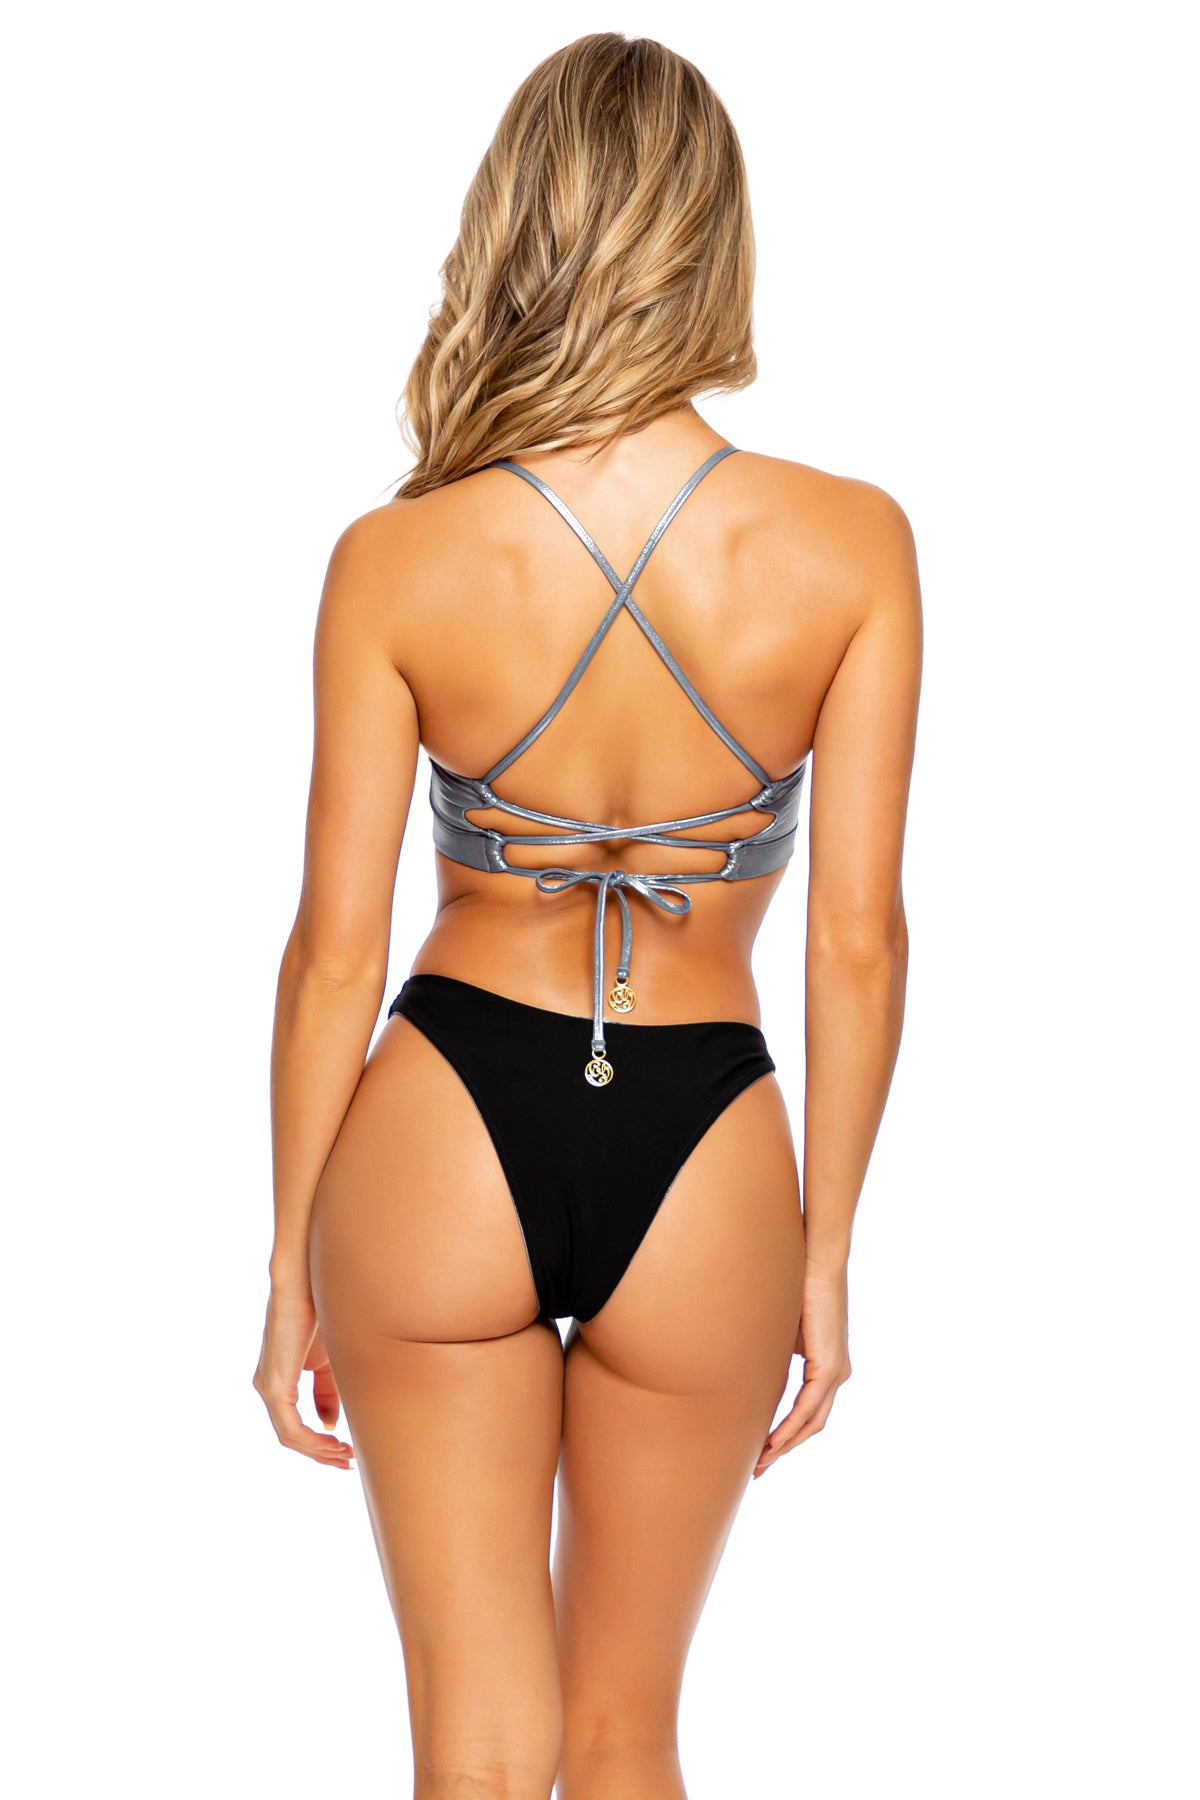 HEAVY METAL - Underwire Top & High Leg Bottom • Vip Platinum